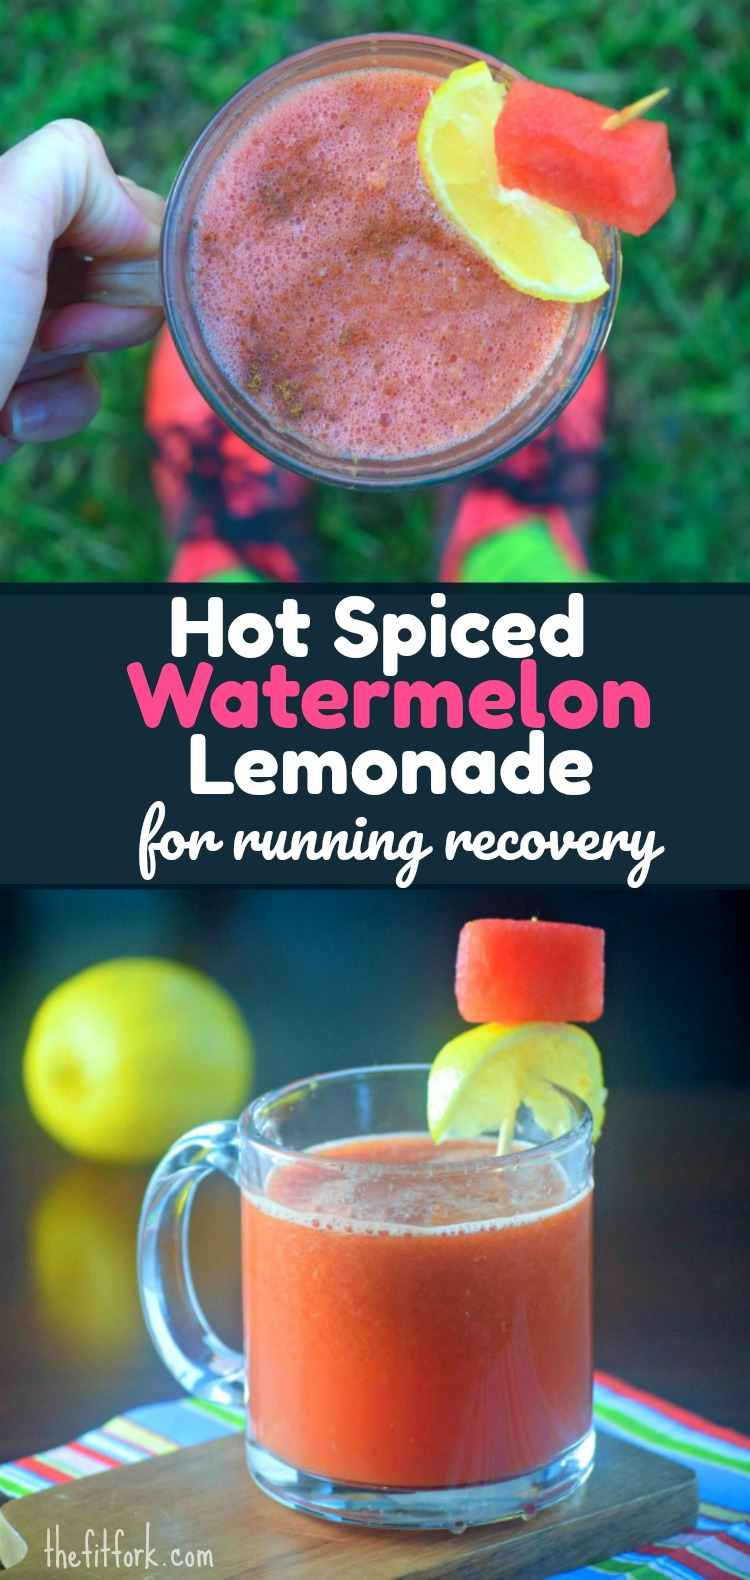 Hot Spiced Watermelon Lemonade for Running and Workout Recovery -- made from fresh watermelon , lemons, turmeric, cinnamon and black pepper. Collagen protein is also added for improved muscle, joint and ligament recovery after exercise..